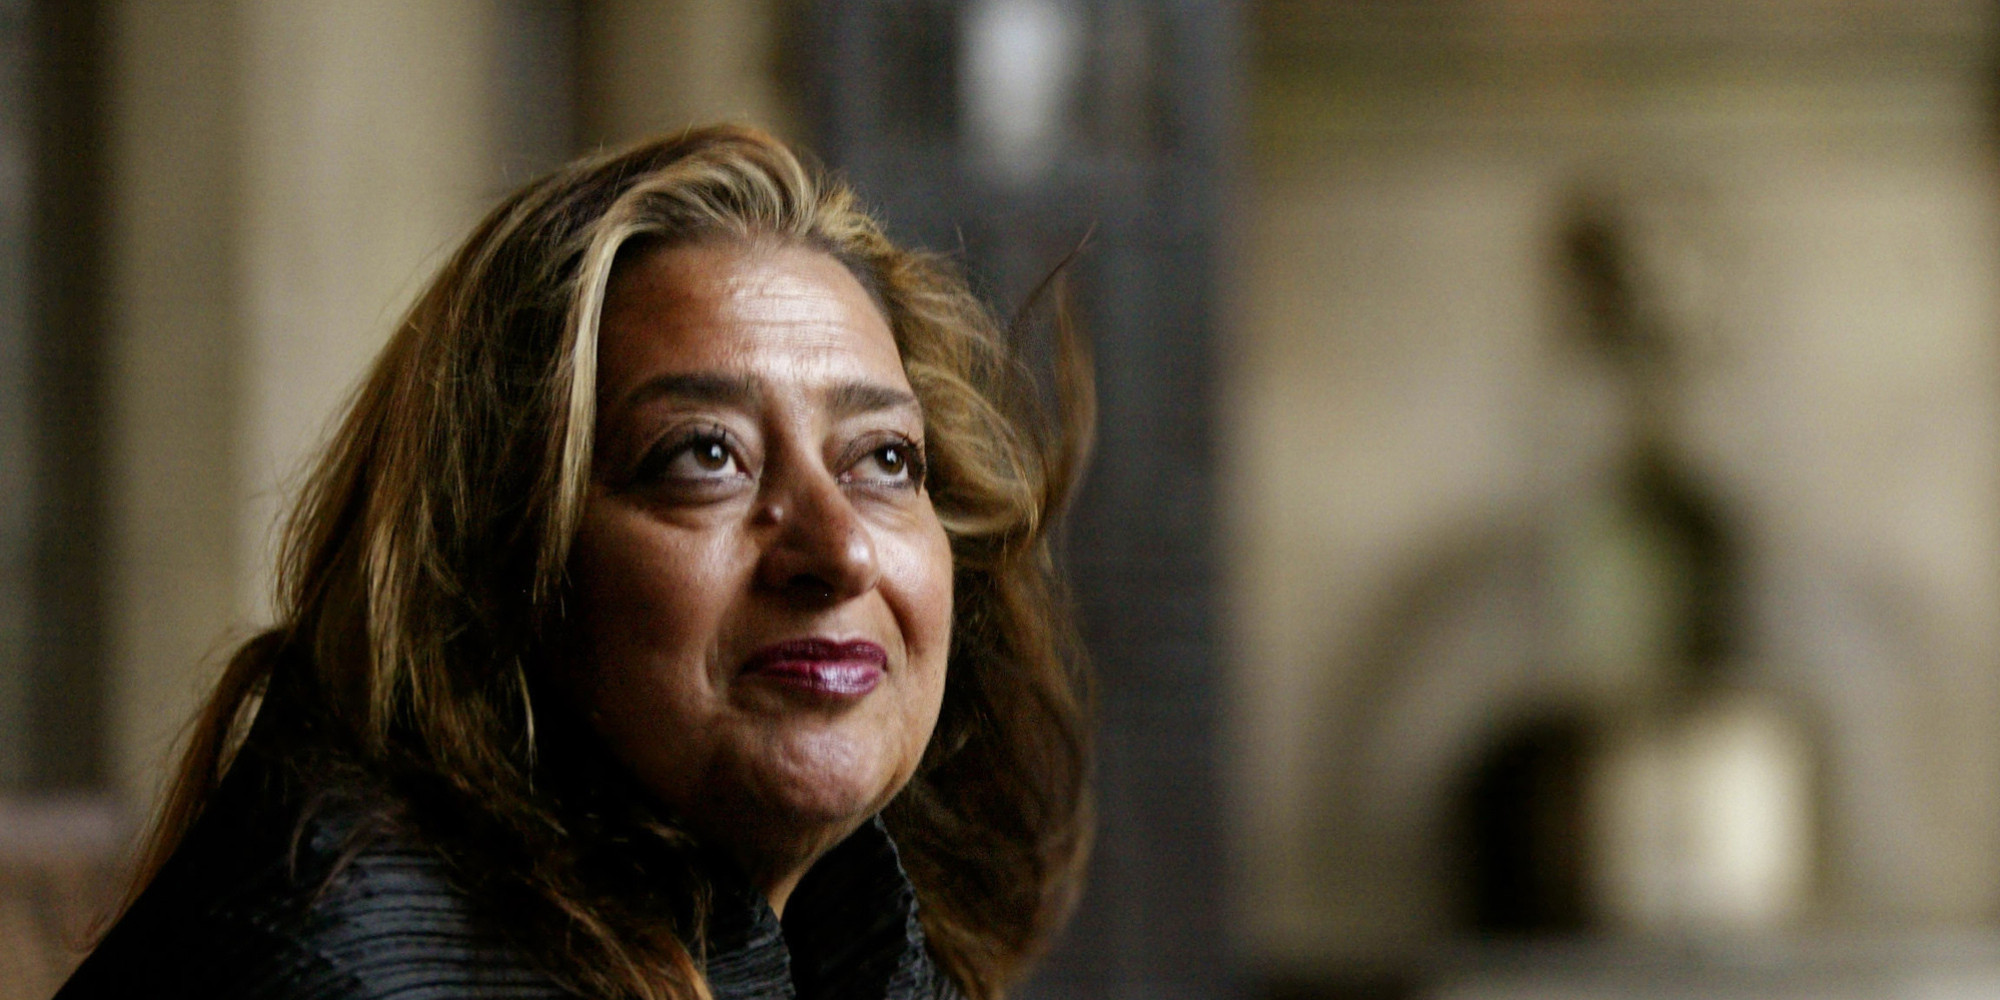 Pritzker Architecture Prize winner for 2004 Zaha Hadid poses Sunday, March 14, 2004, in West Hollywood, Calif. Hadid, an Iraqi-born architect who struggled for years to get her audacious and unconventional designs built, was named winner Sunday, March 21, 2004. She is the first woman to the win architecture's most prestigious prize in its 26-year history. (AP Photo/Kevork Djansezian)